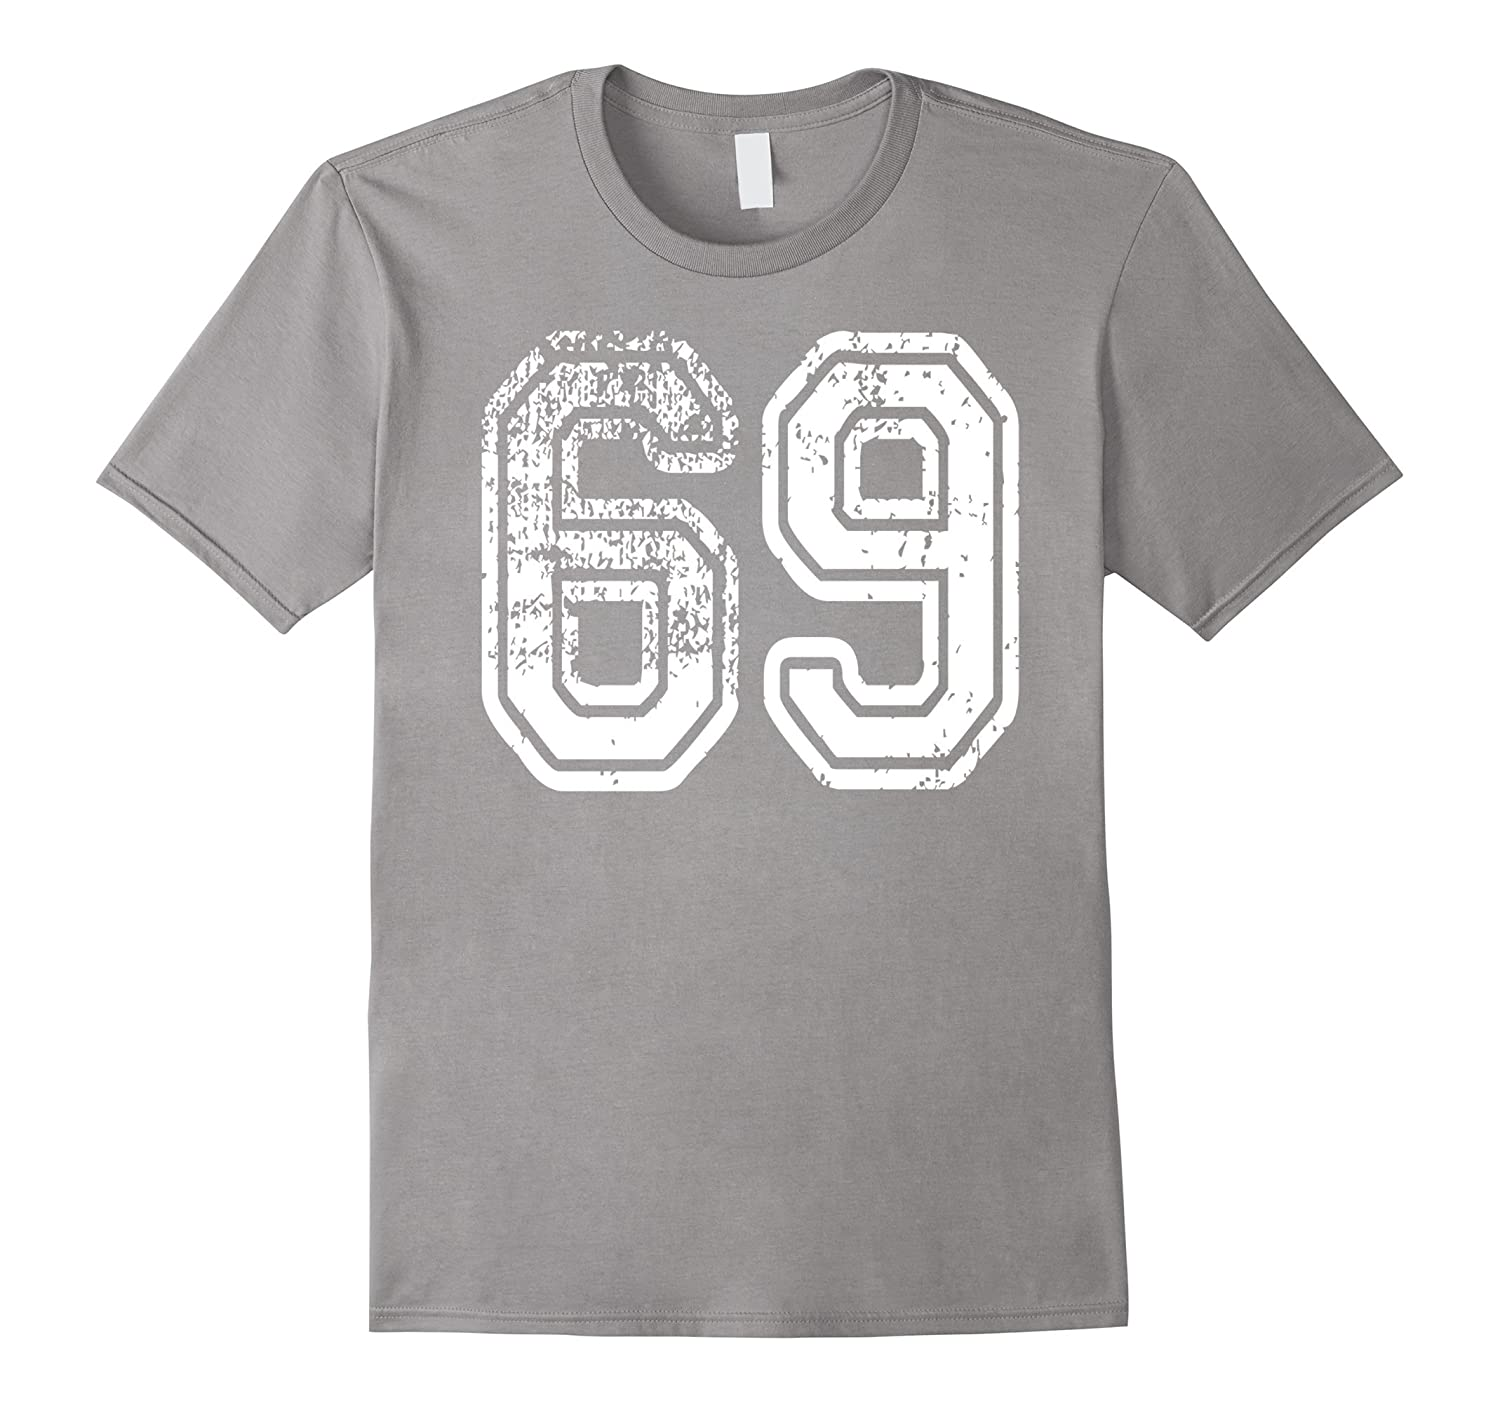 #69 Grungy Numbered Sports Team T-Shirts printed both sides-Rose